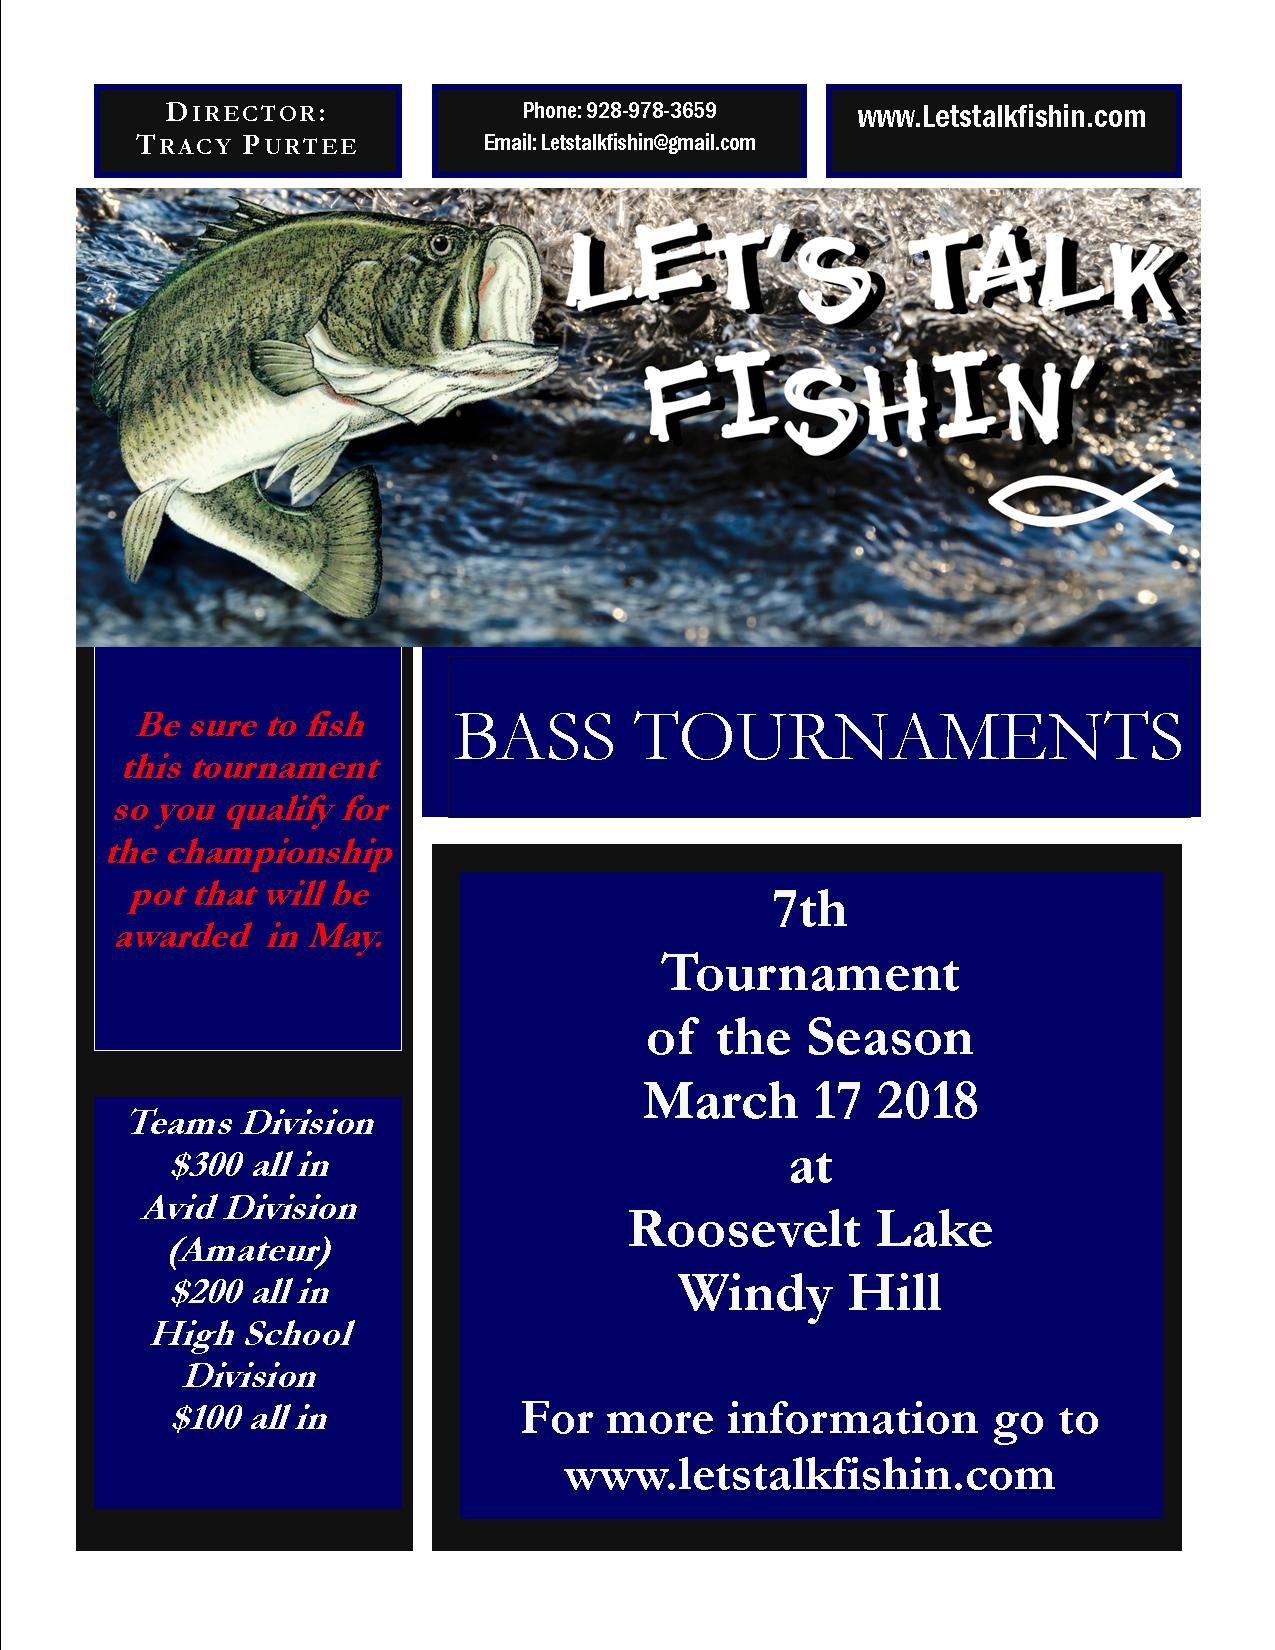 Click image for larger version  Name:7th Tournament.jpg Views:1857 Size:283.6 KB ID:96826